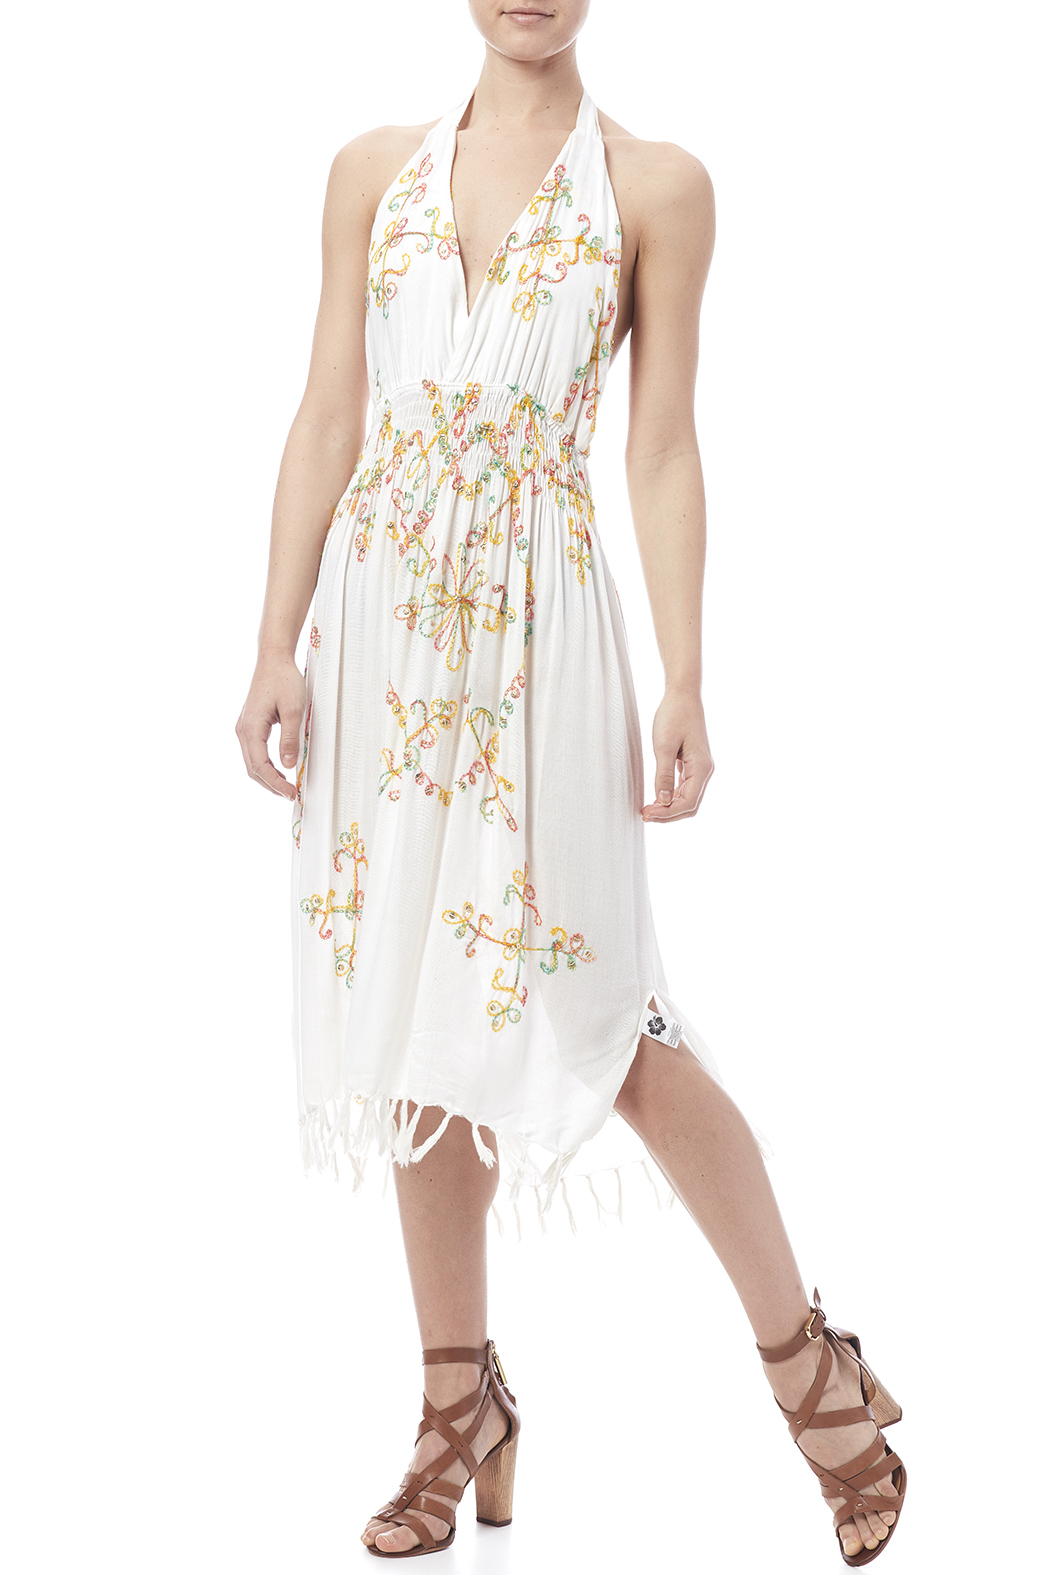 tu-anh boutique Halter Embroidery Dress - Main Image